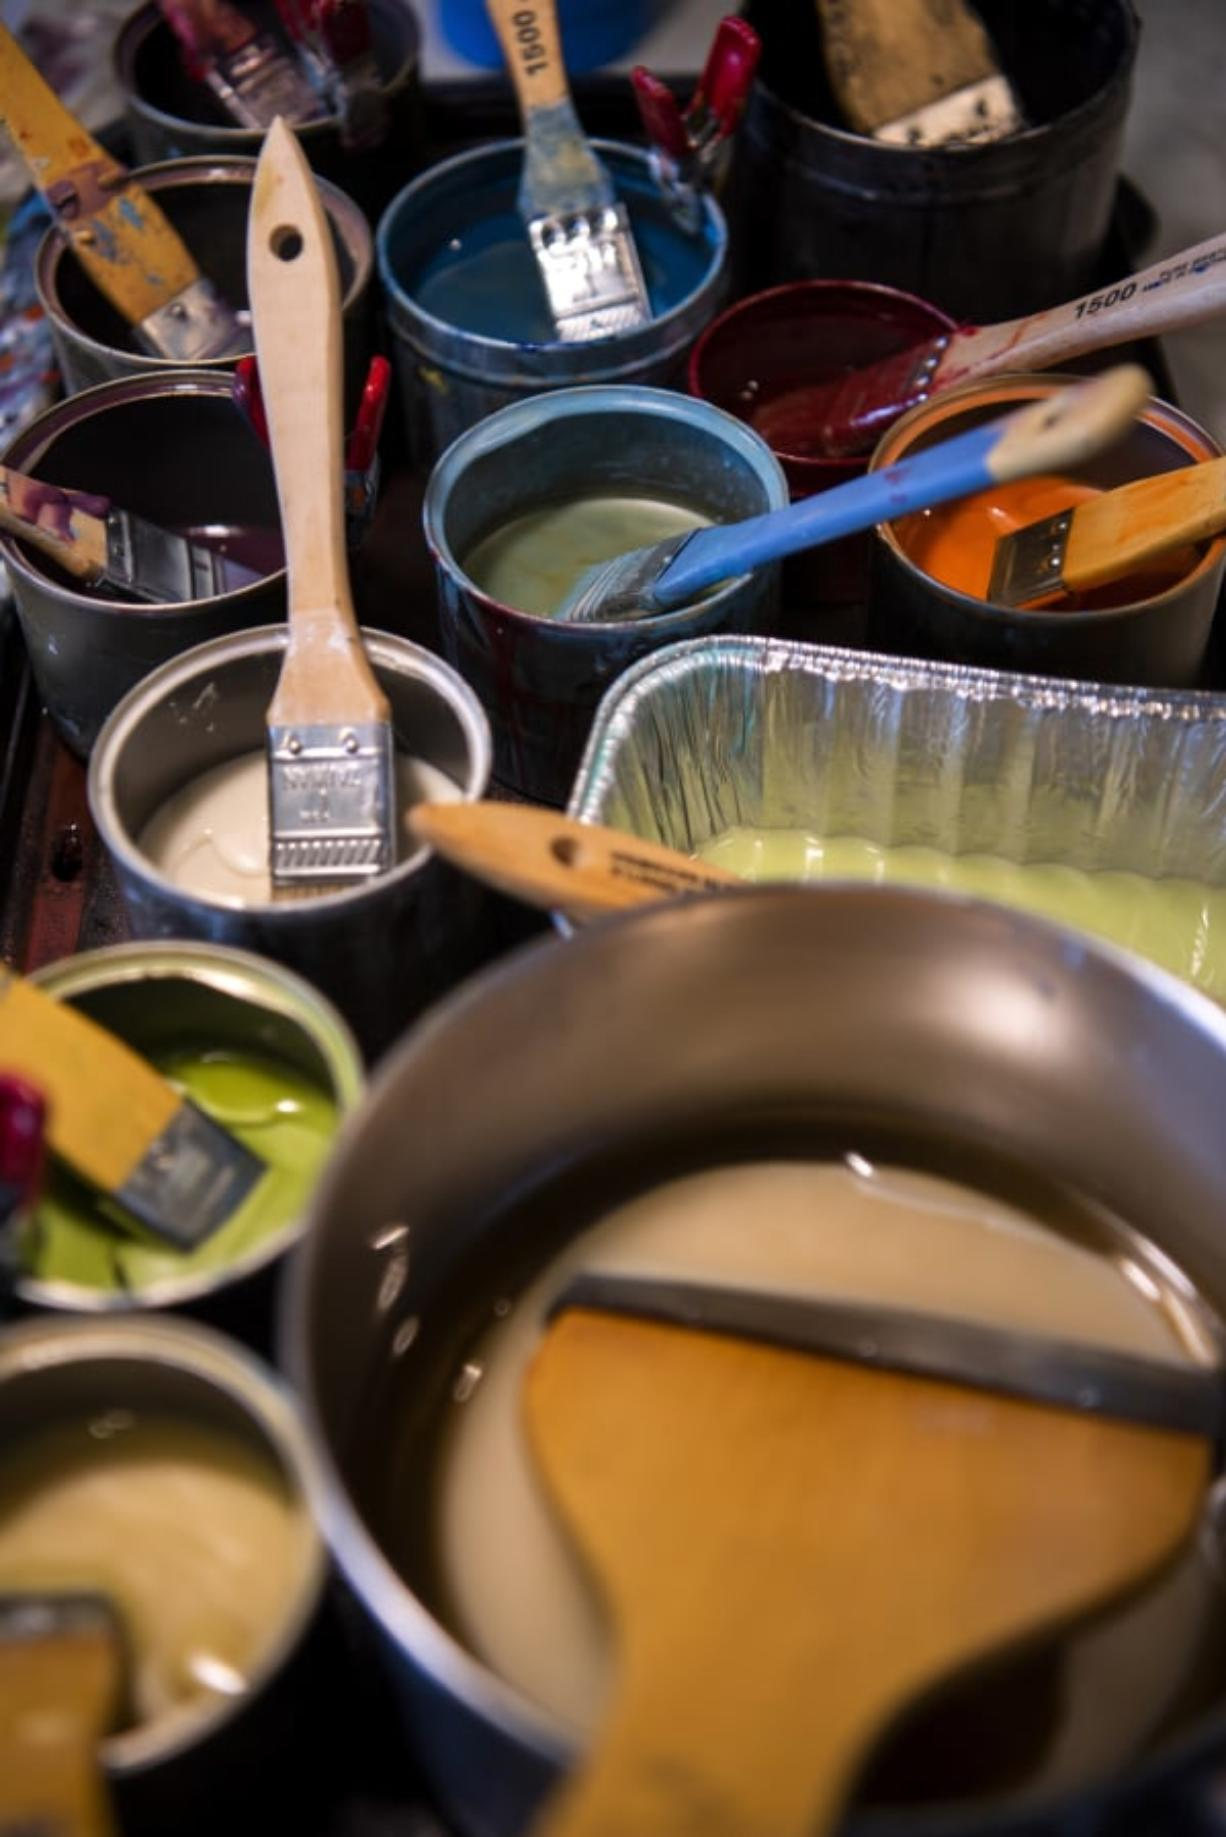 Many colorful mixtures of encaustic (beeswax) and dammar resin sit Tracy Simpson's home studio in Washougal, ready to go; all she has to do is melt them, or make some more, to start adding colors to her works in progress.